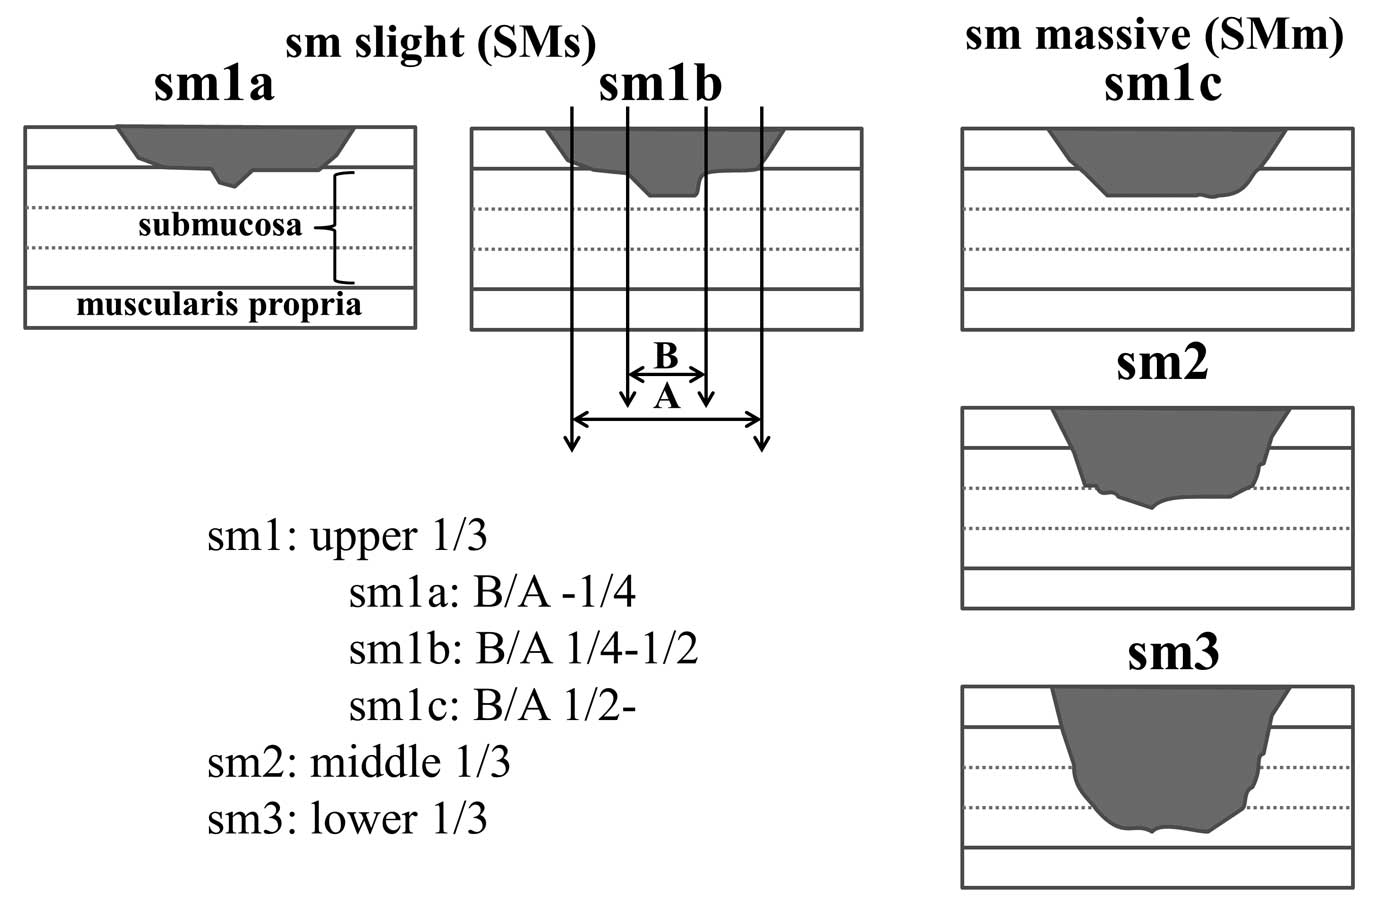 magnifying narrow band imaging of surface patterns for diagnosing classification of the degree of submucosal invasion we divided submucosal cancers into sm1 sm2 and sm3 according to the depth of invasion